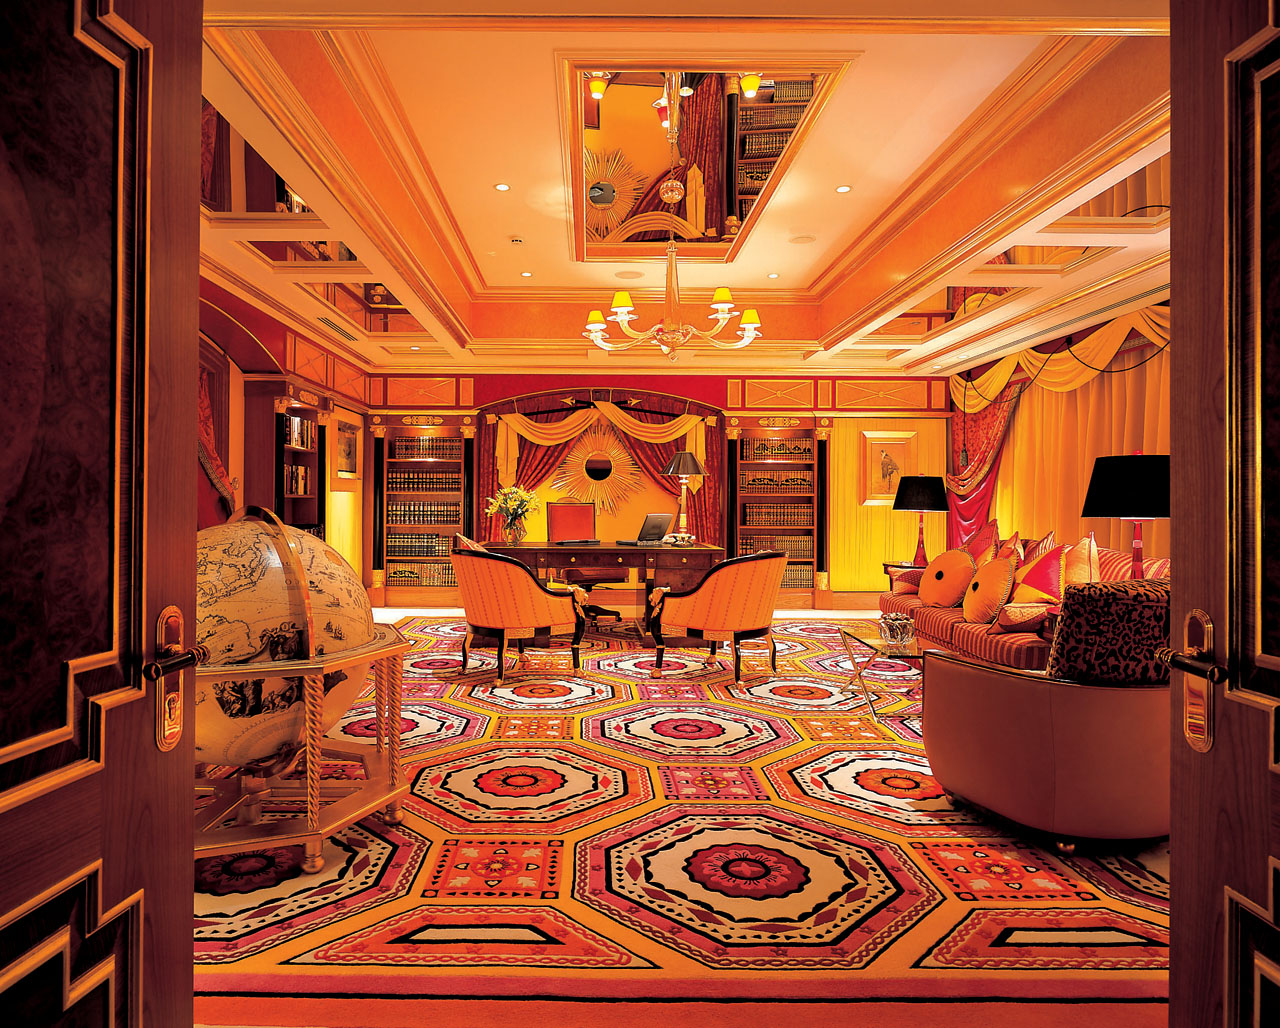 World visits burj al arab hotel in dubai suite and interior for Burj al arab suite